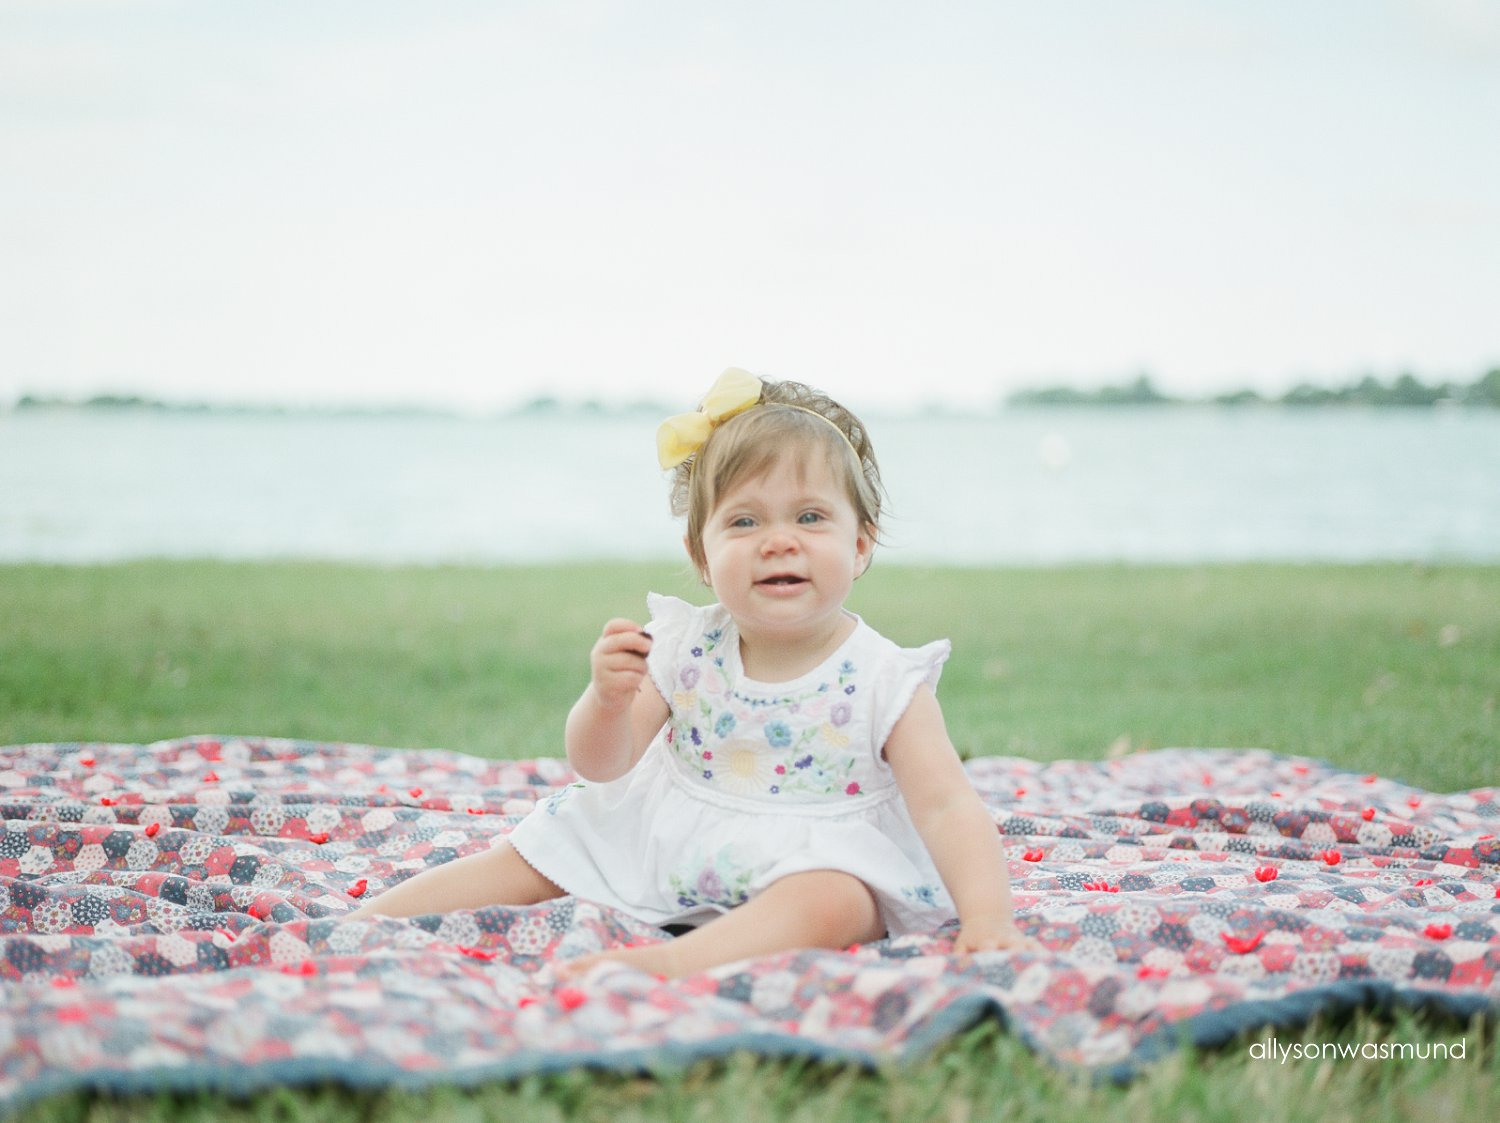 Baby Irelyn sitting on a blanket at her baby milestone film session.